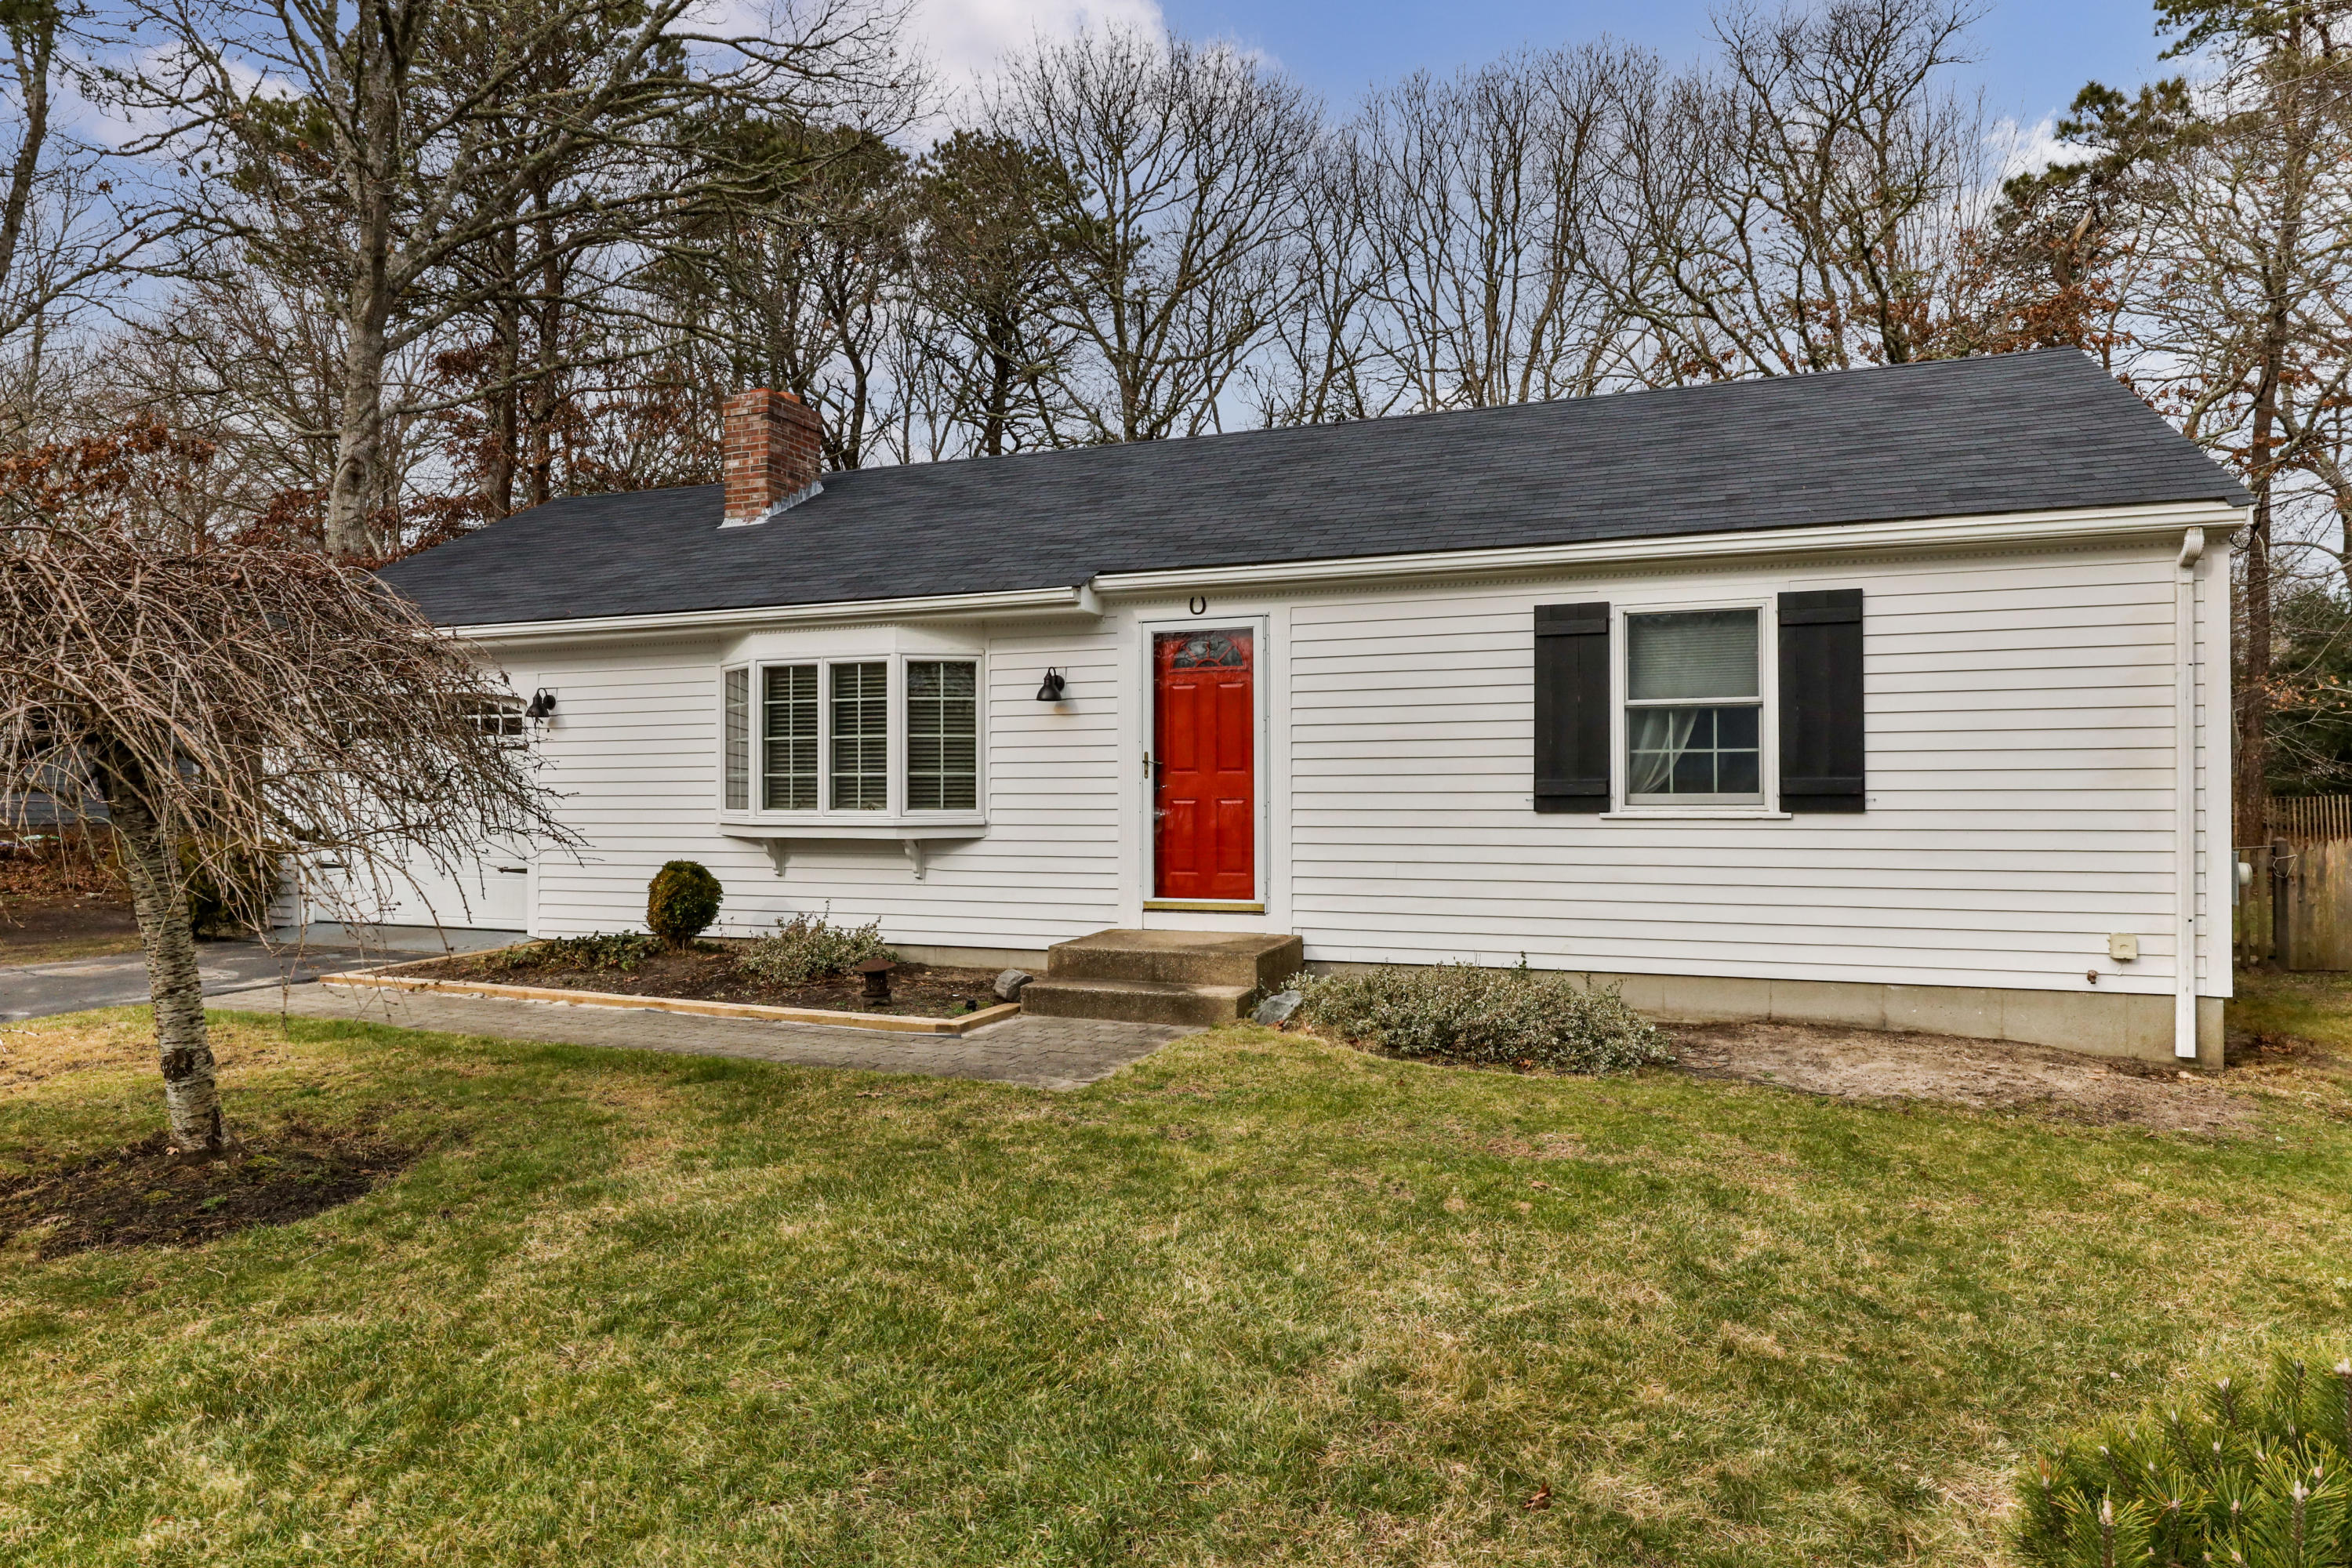 66 Swift Brook Road, South Yarmouth MA, 02664 details